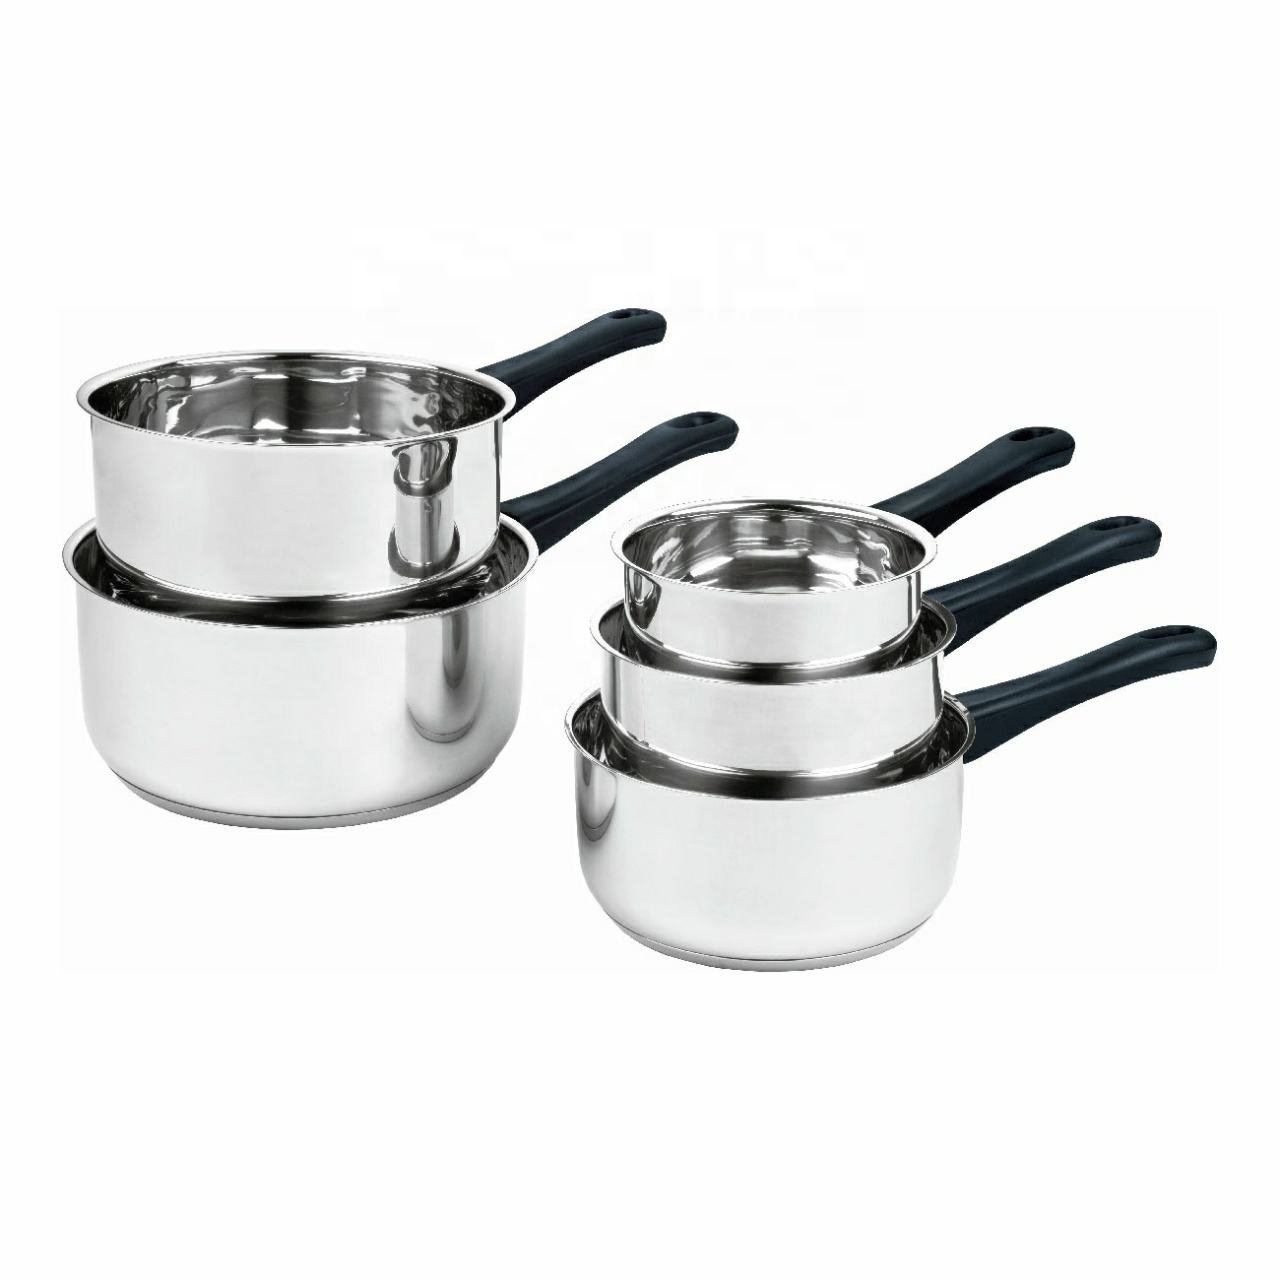 Factory Price 5 pieces stainless steel saucepan set cooking pots